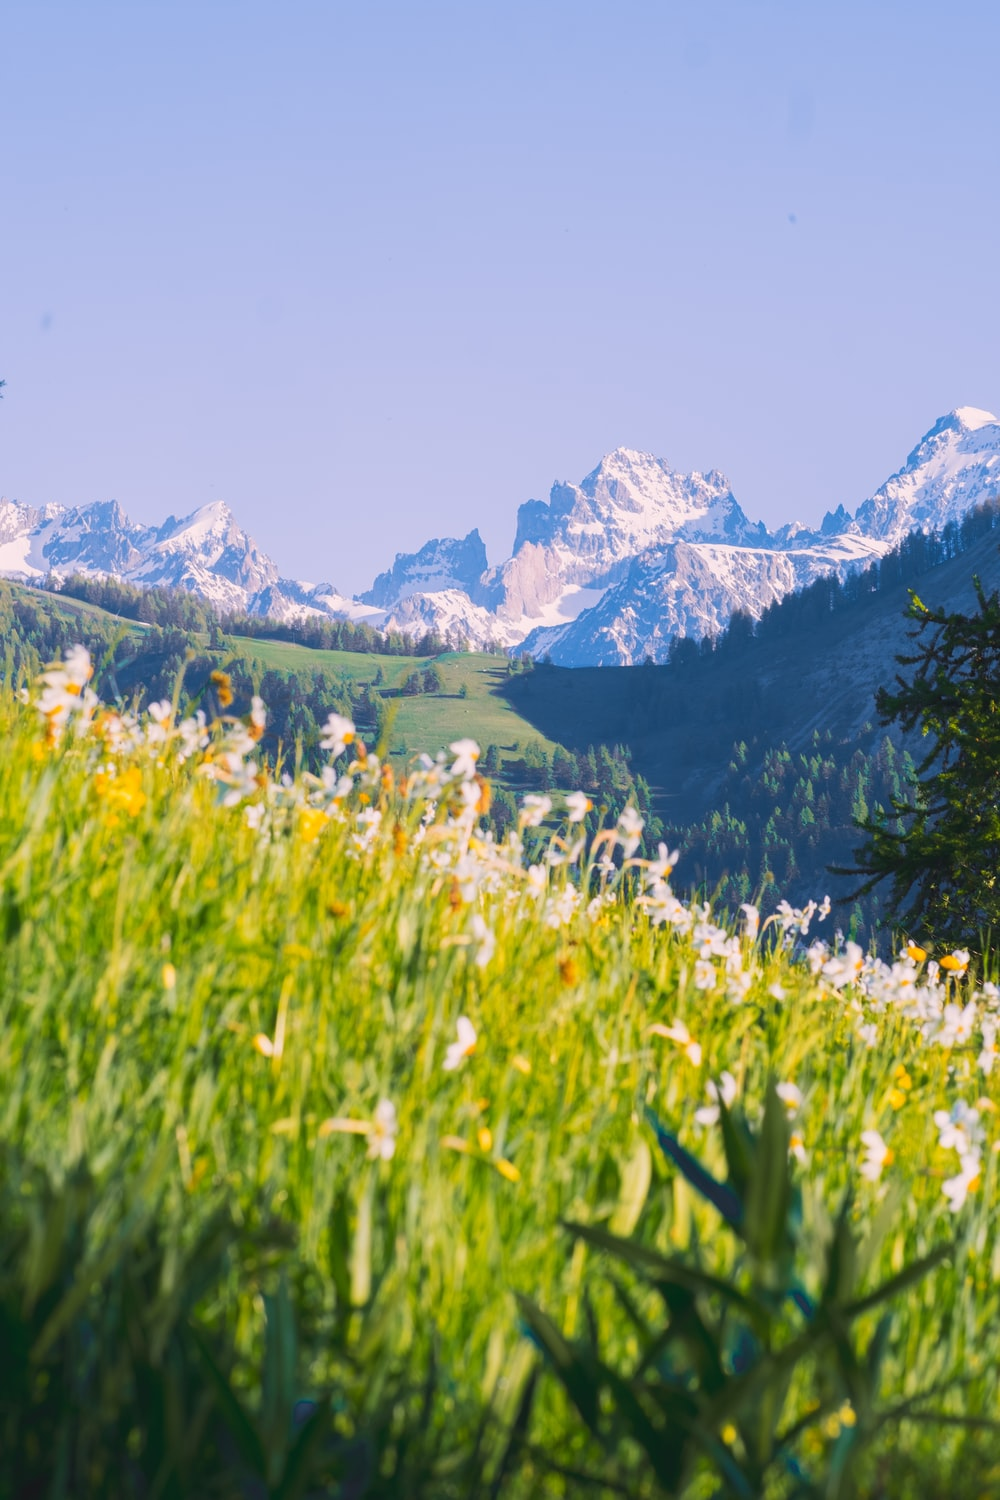 white flowers near green grass field and snow covered mountains during daytime